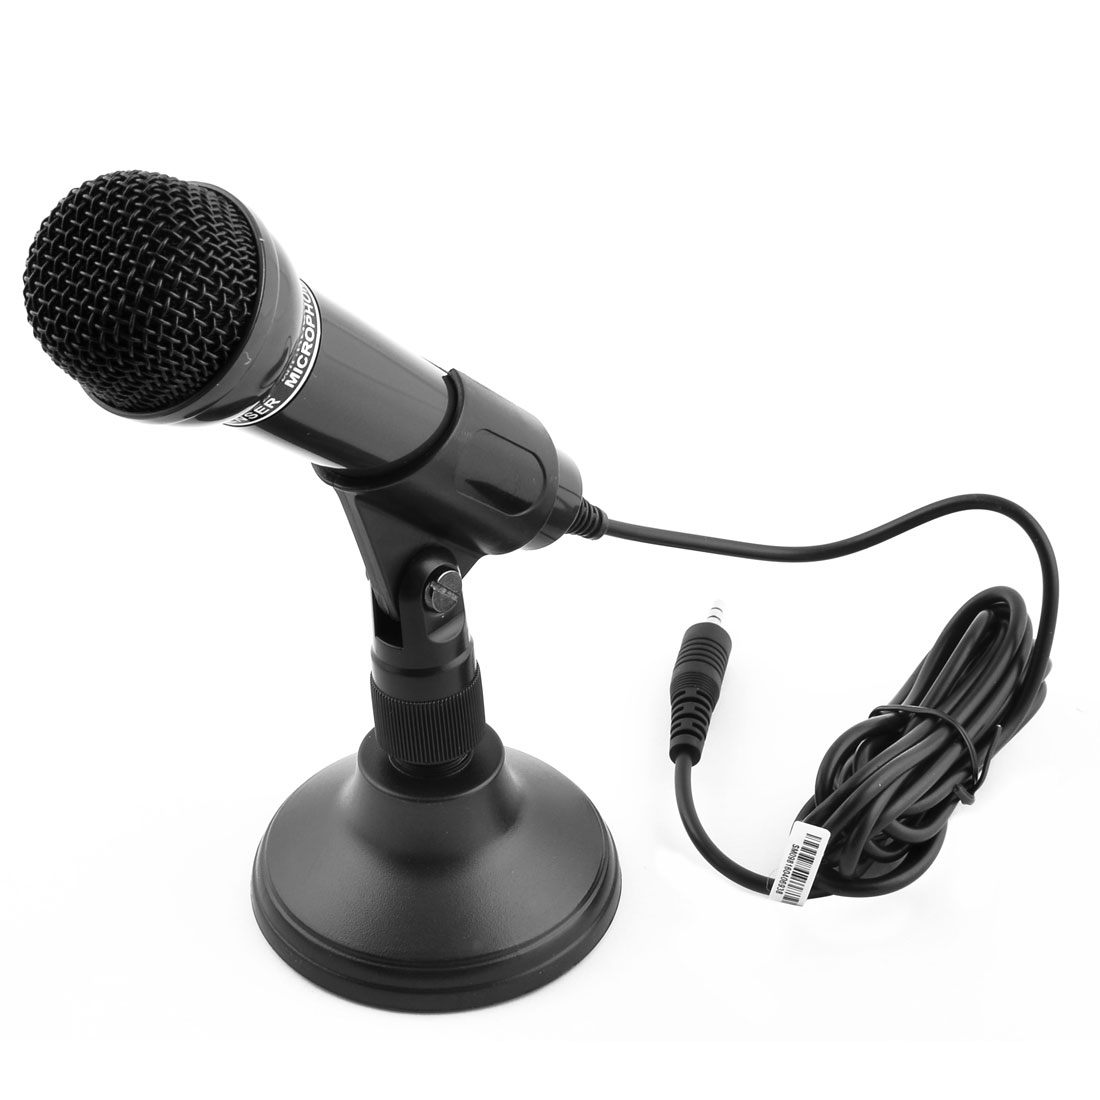 PC Computer Mini 3.5mm Connector Stereo Multimedia Condenser Stand Mount Handheld Microphone Black